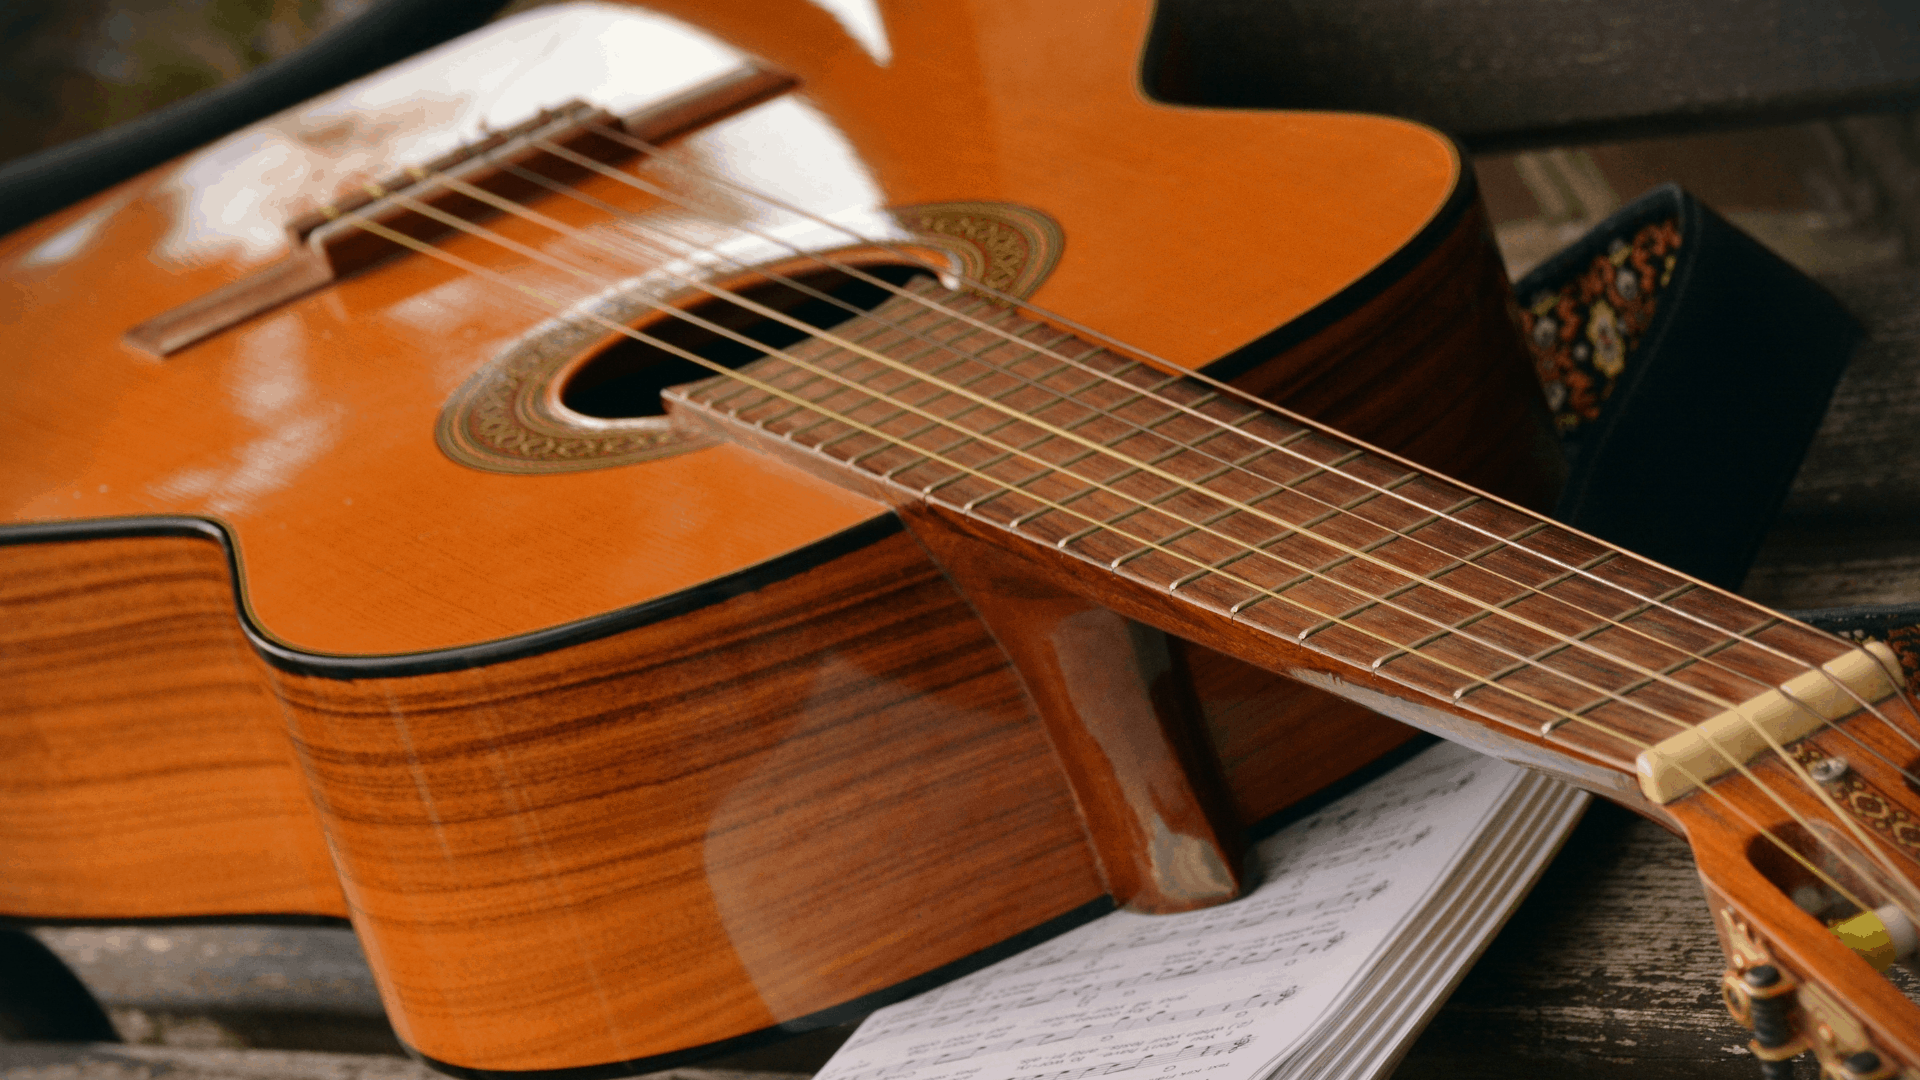 How to ship a guitar without a case | Make sure it arrives safely